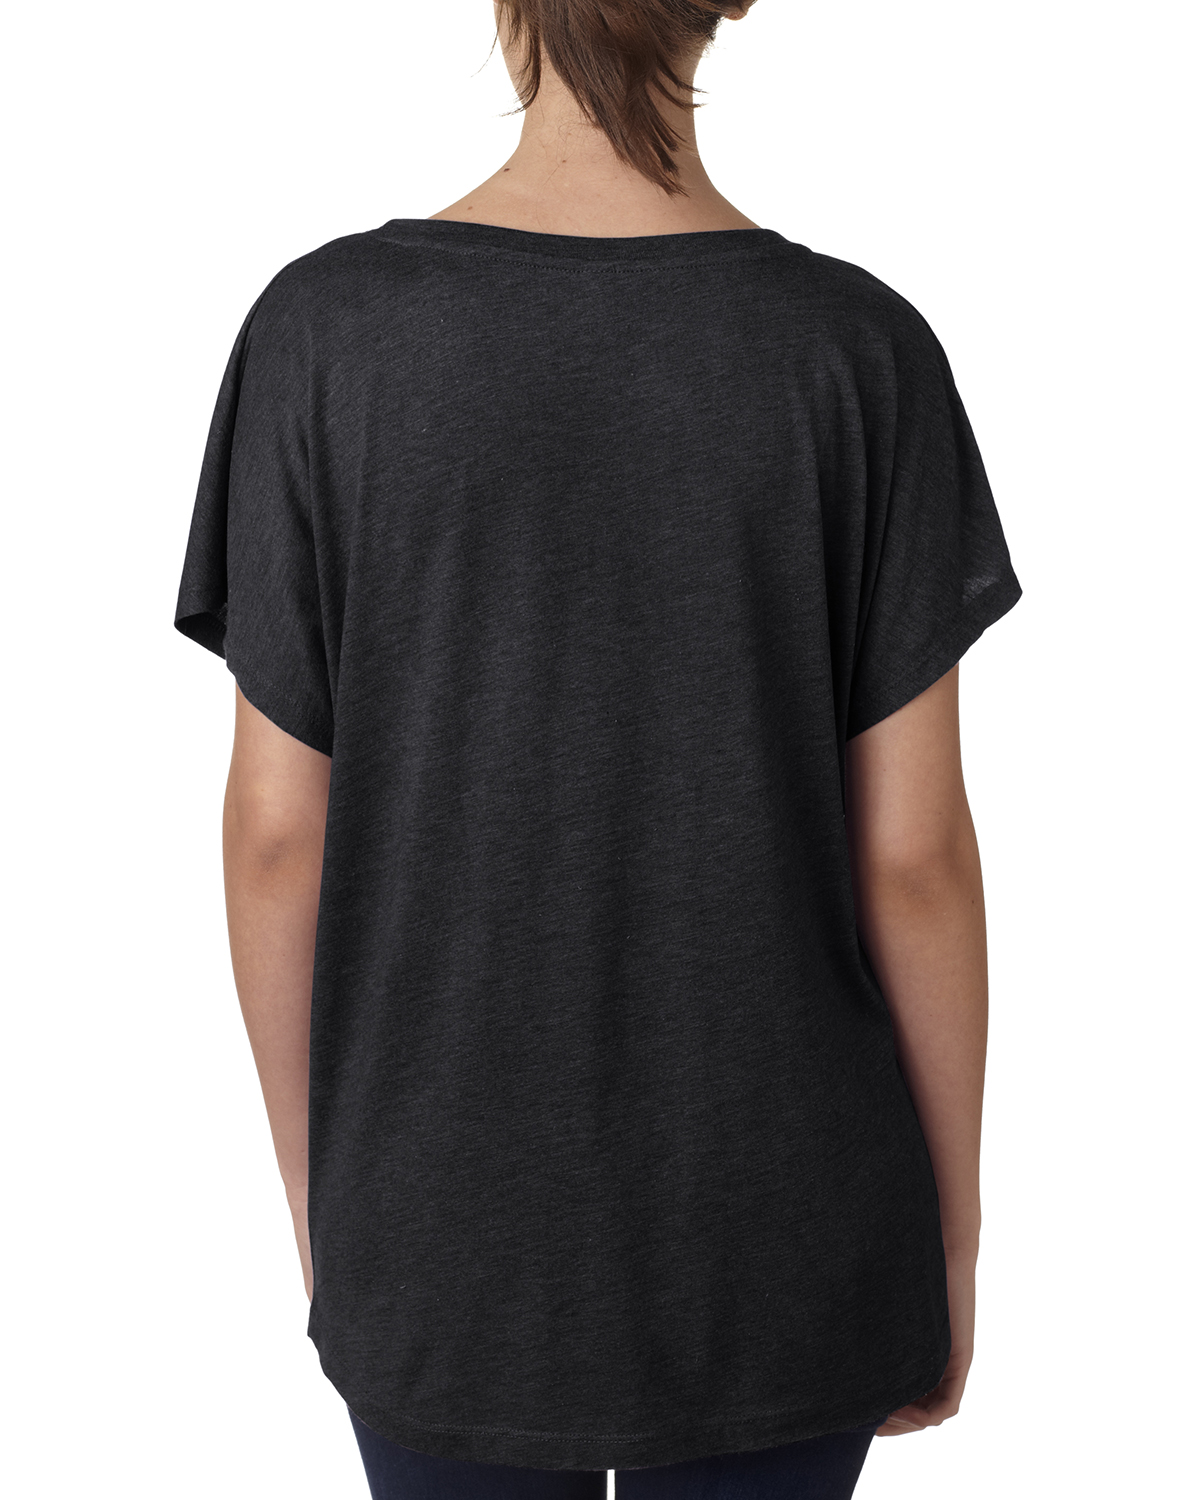 NEW-Next-Level-Junior-Fit-Triblend-Dolman-Sleeve-Relexed-Fit-T-Shirt-B-6760 thumbnail 27